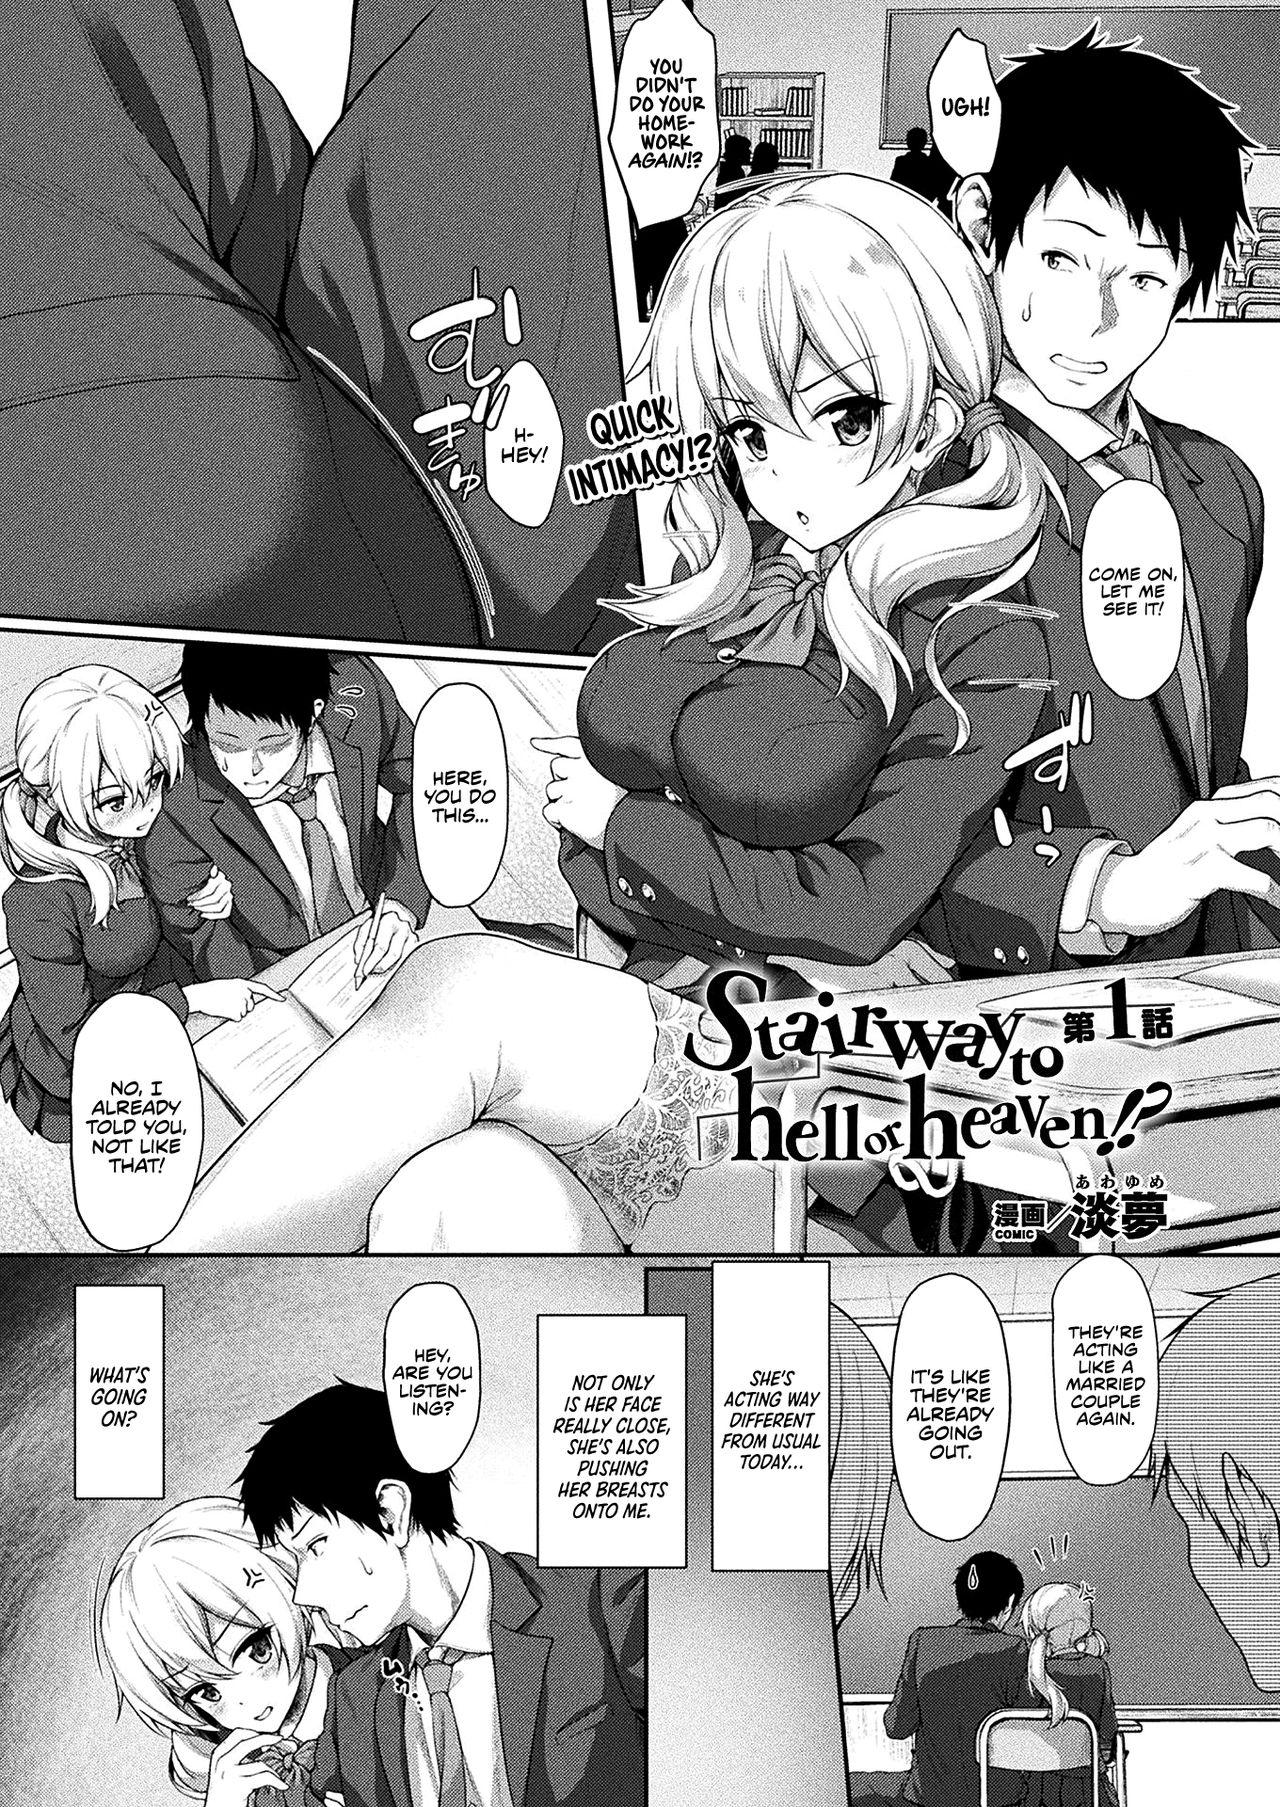 Stairway to hell or heaven!? Ch. 1-2 0